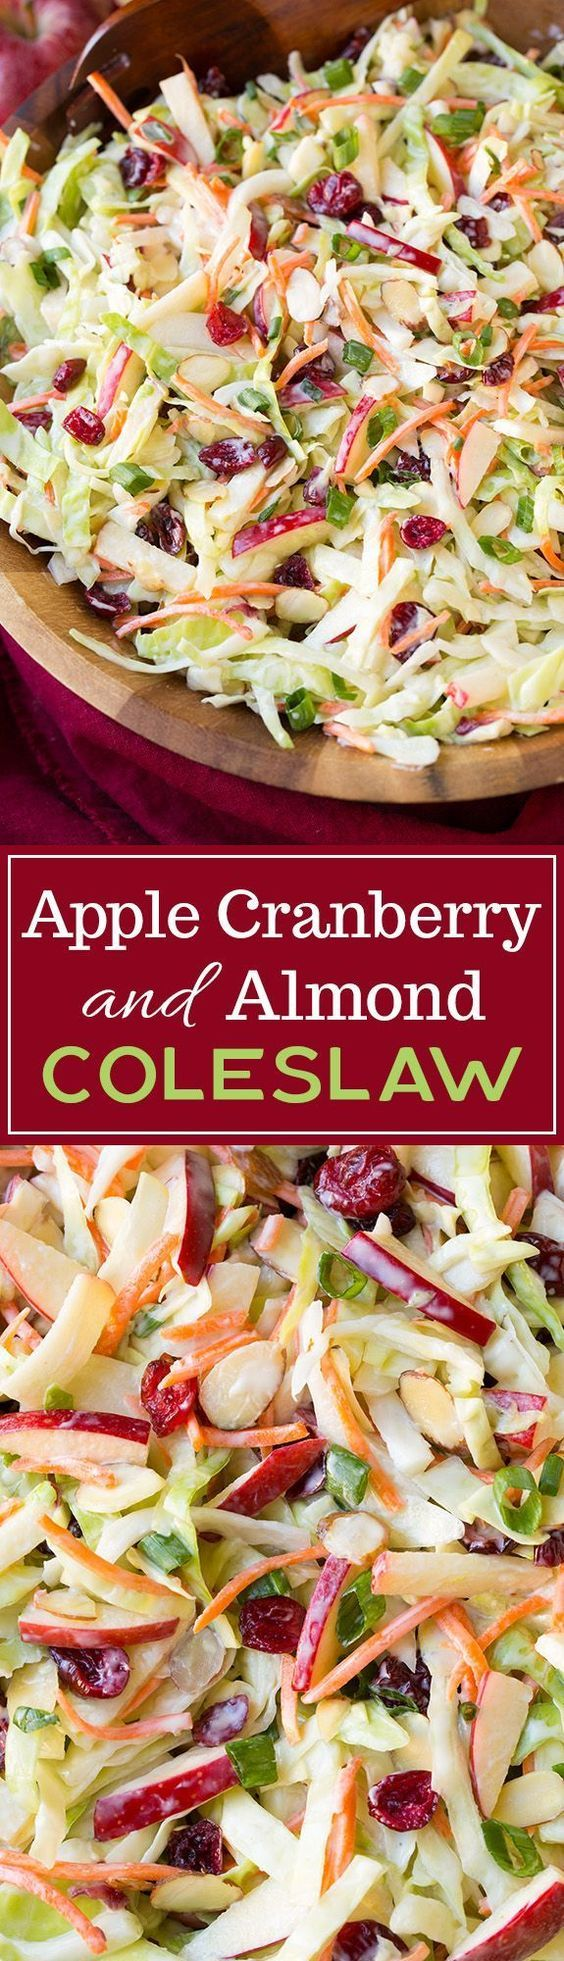 Apple Cranberry Almond Coleslaw Love That It Uses Mostly Greek Yogurt Instead Of Mayo Easy Healthy Delicious Slaw Recipes Recipes Healthy